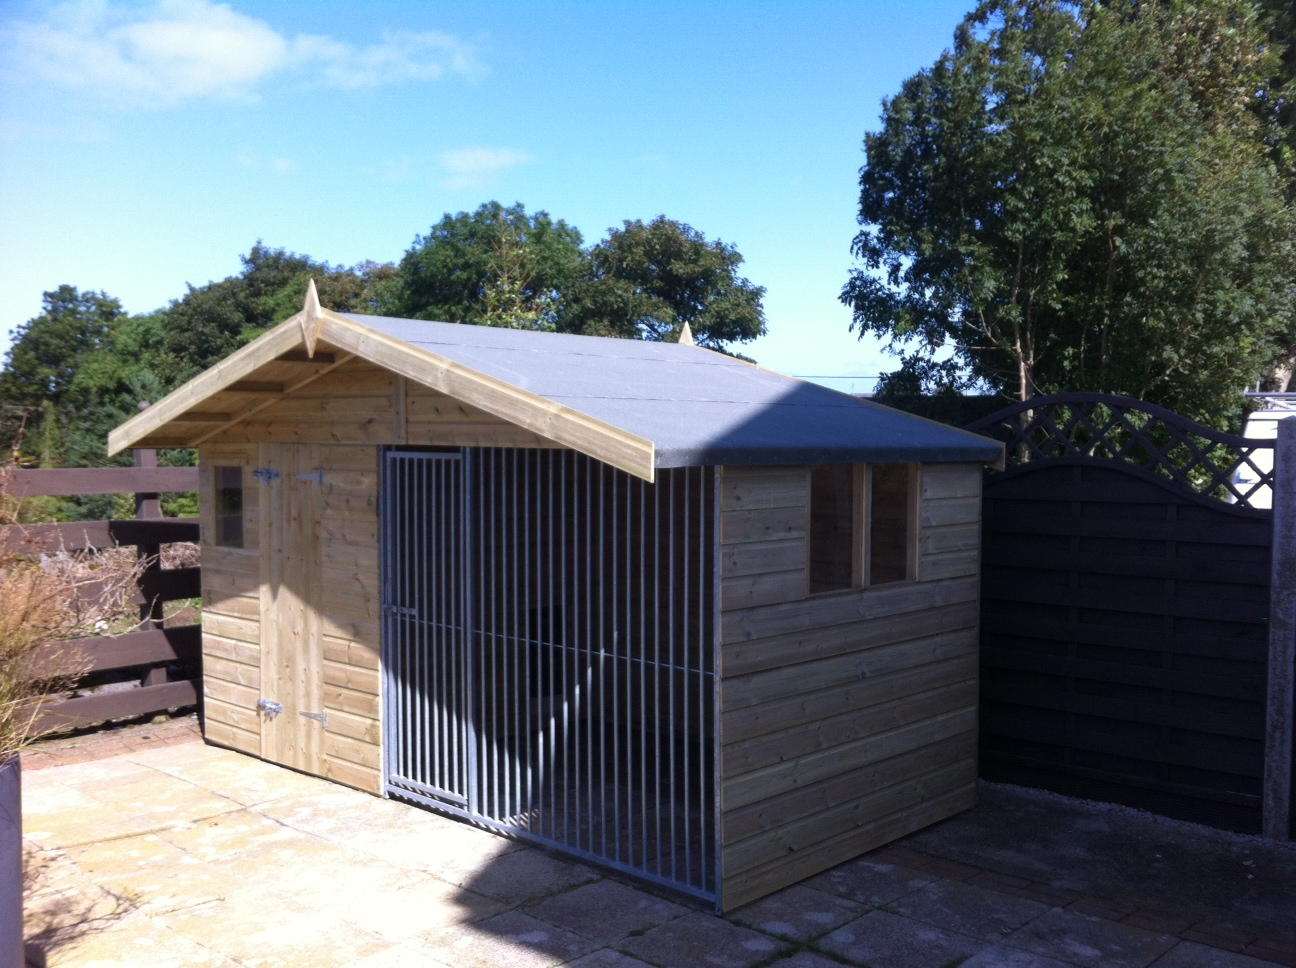 The Chesterfield - Chalet Dog Kennel